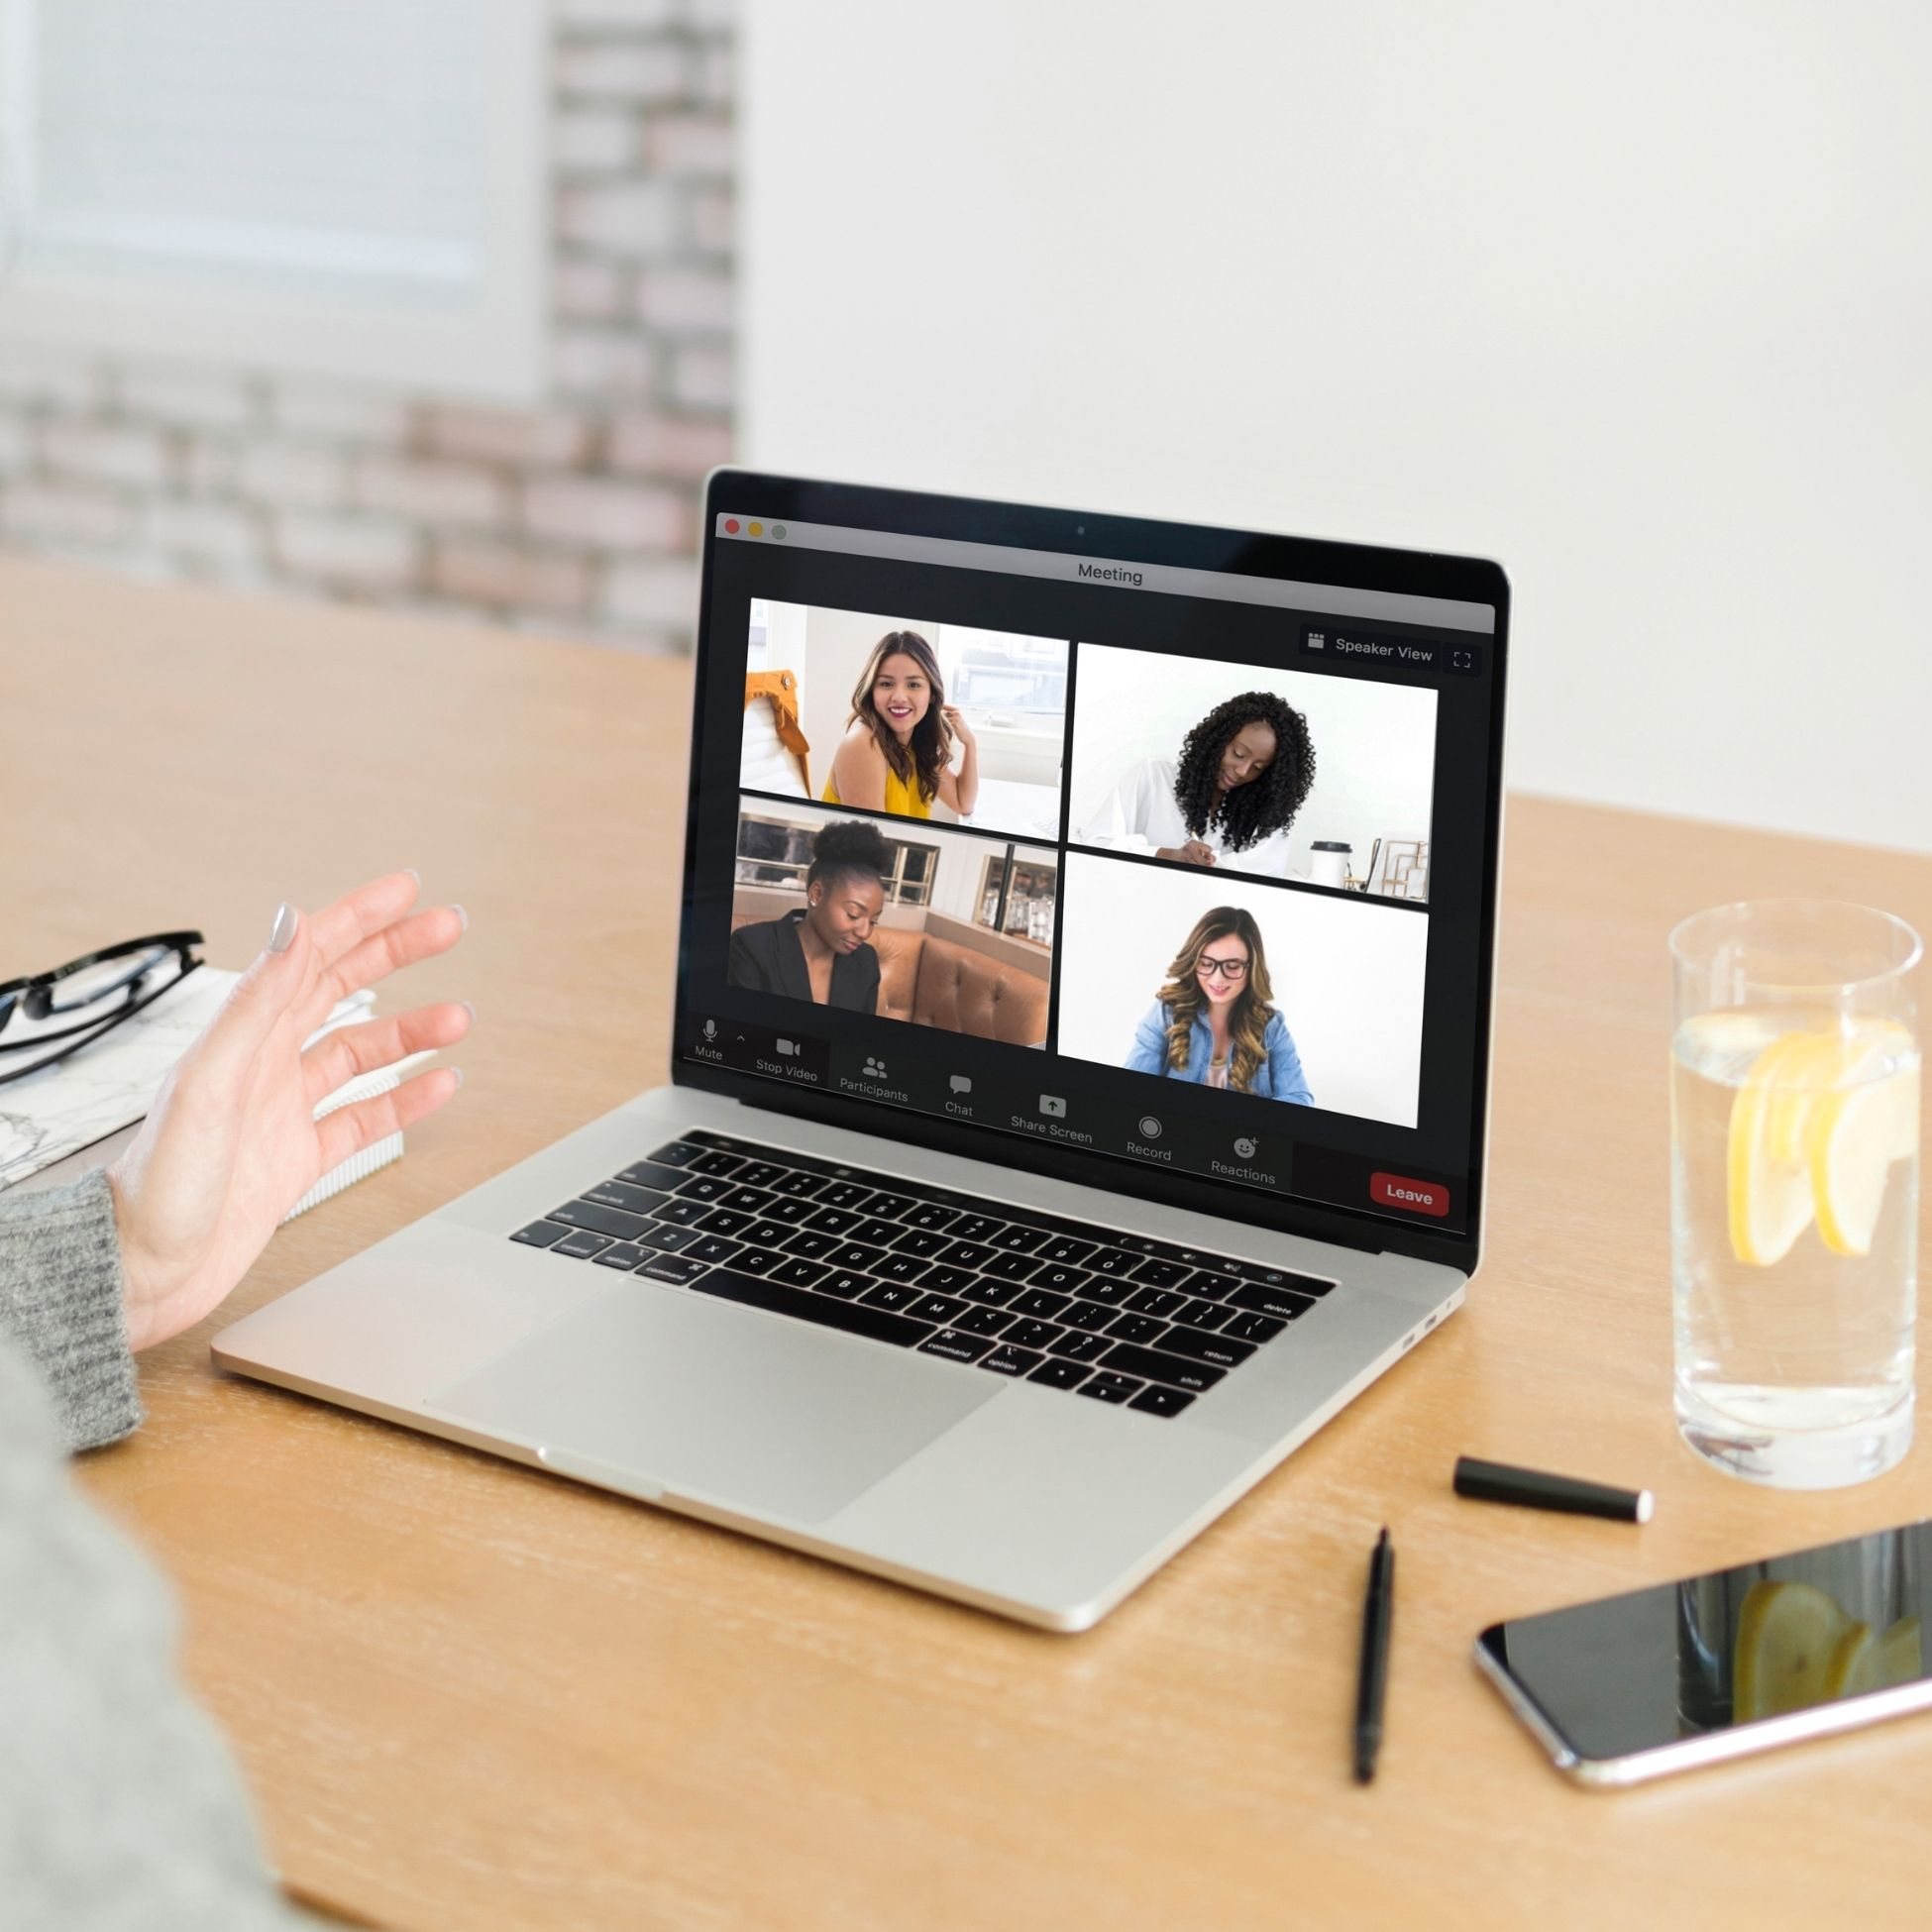 a group nutrition coaching call help virtually: a dietitian is speaking with four clients online